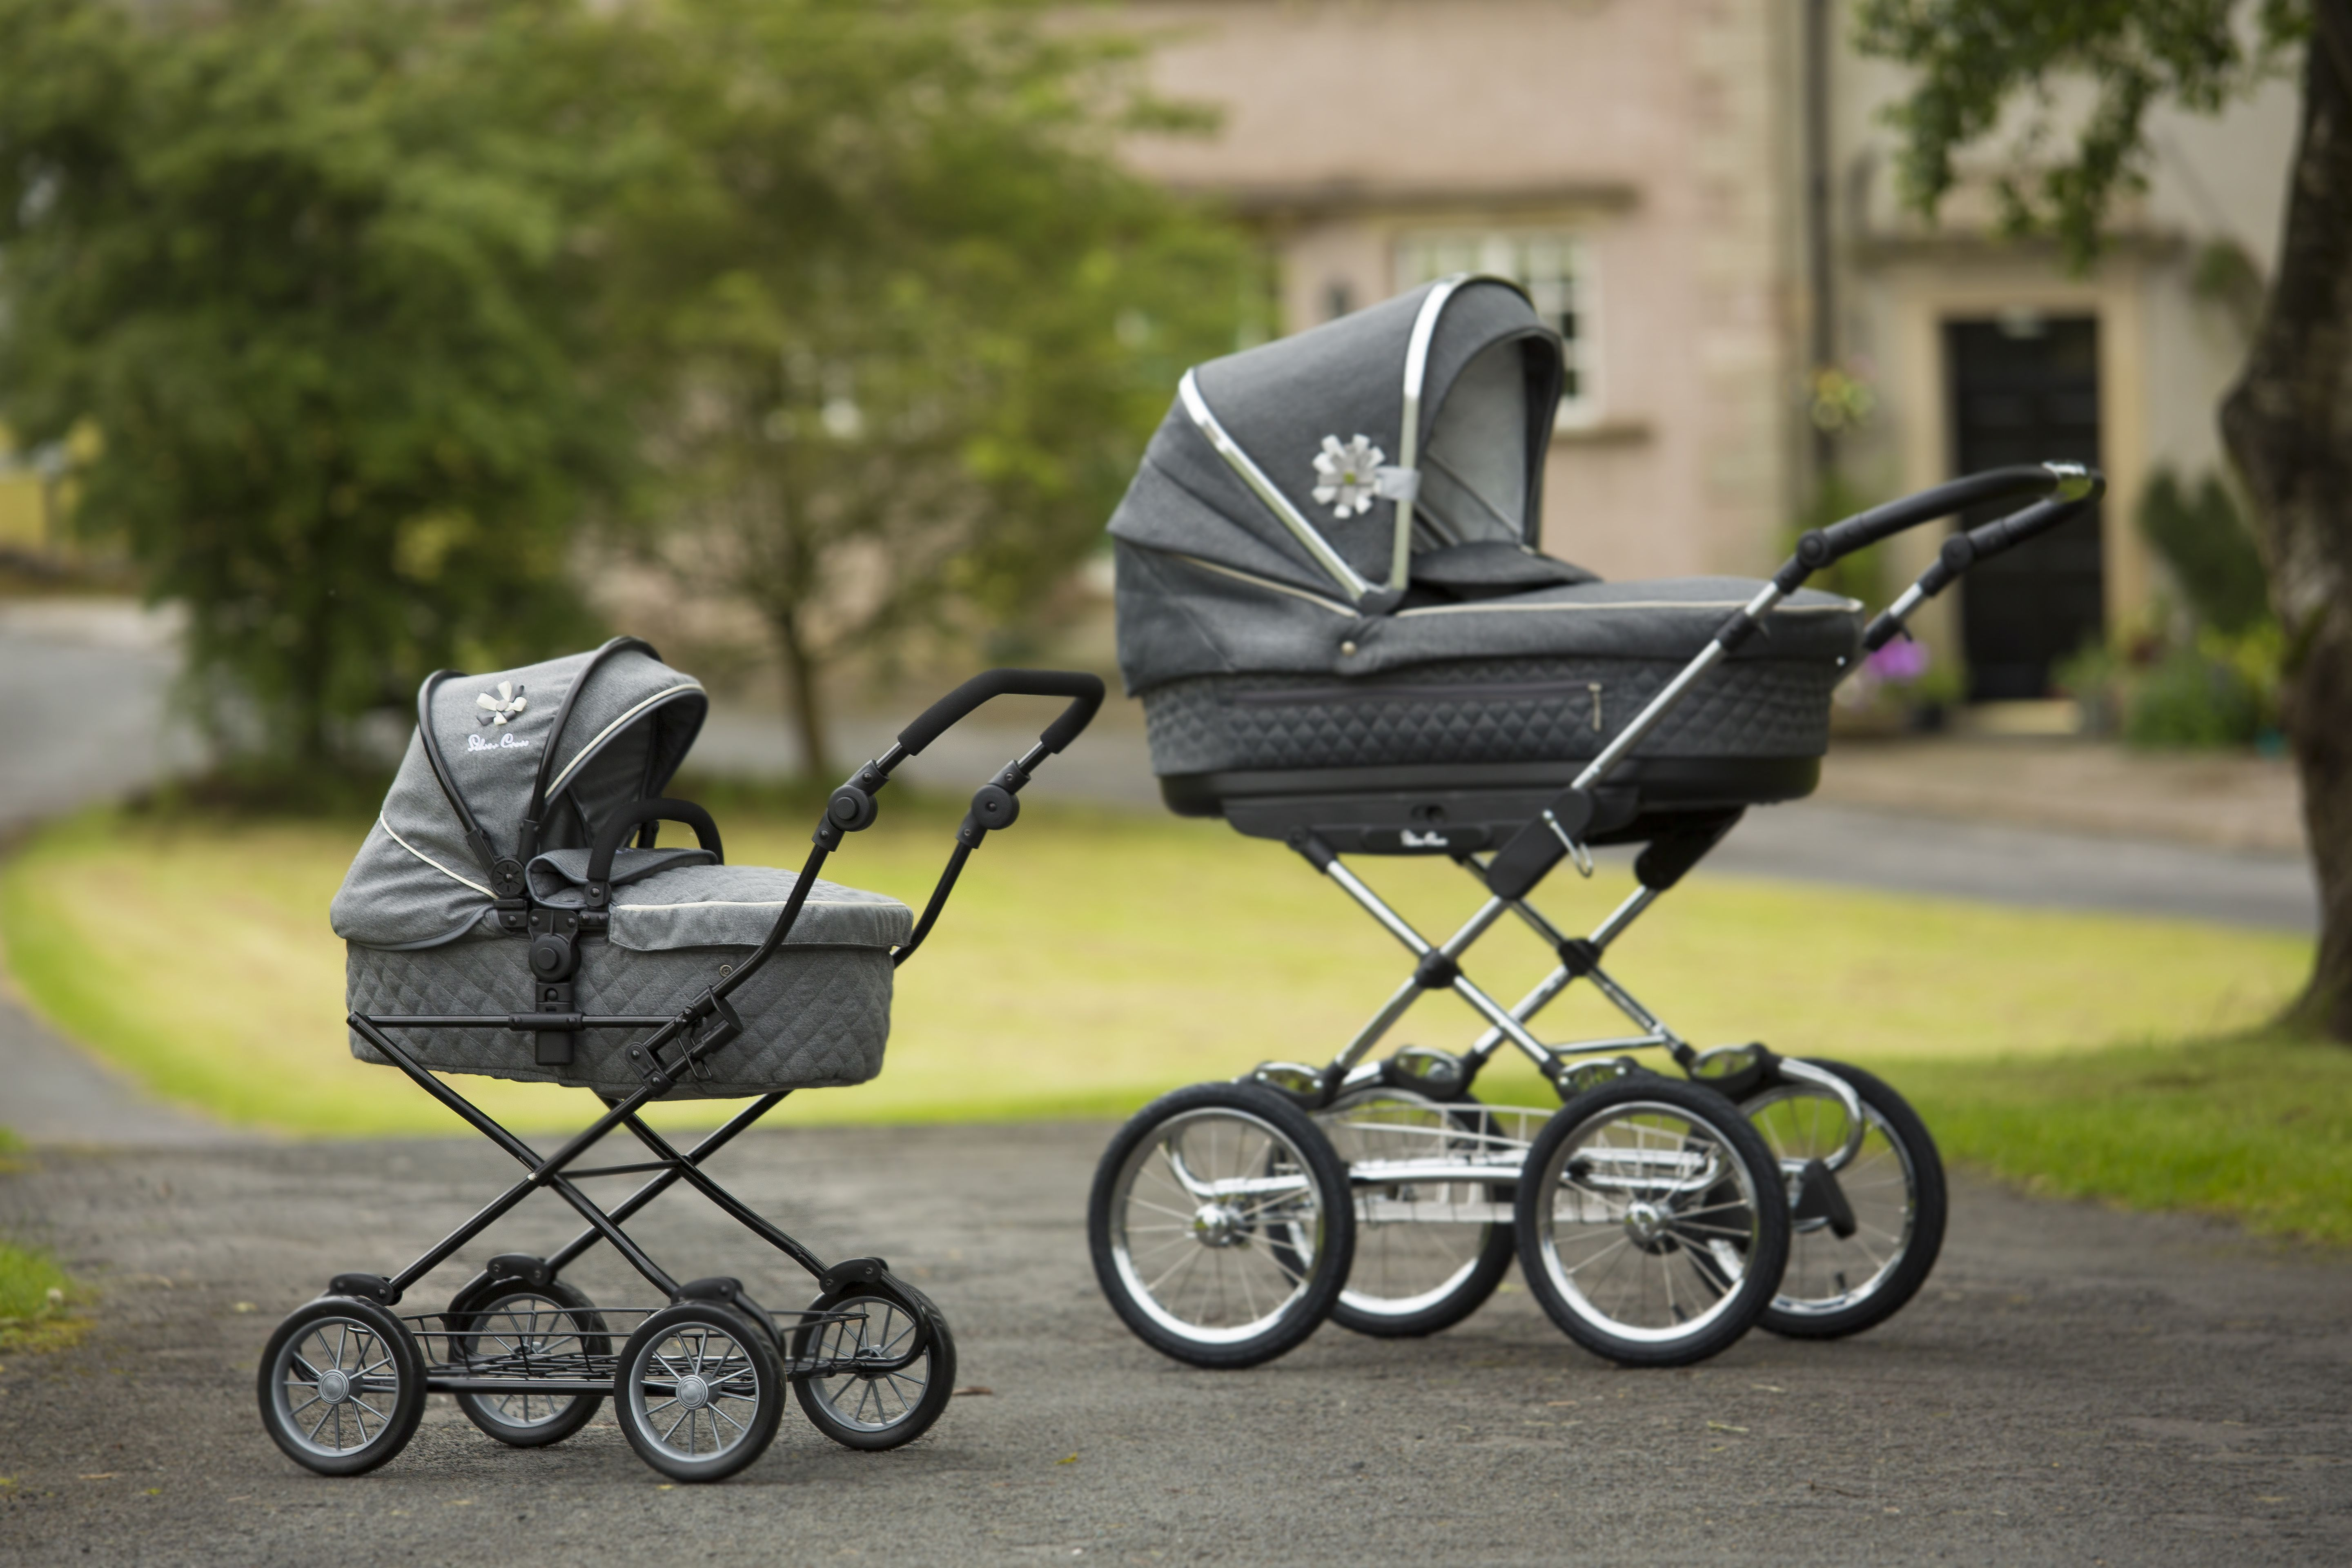 Gesslein Kinderwagen Modelle 2017 New Silver Cross Doll S Sleepover Doll S Pram In Eton Grey